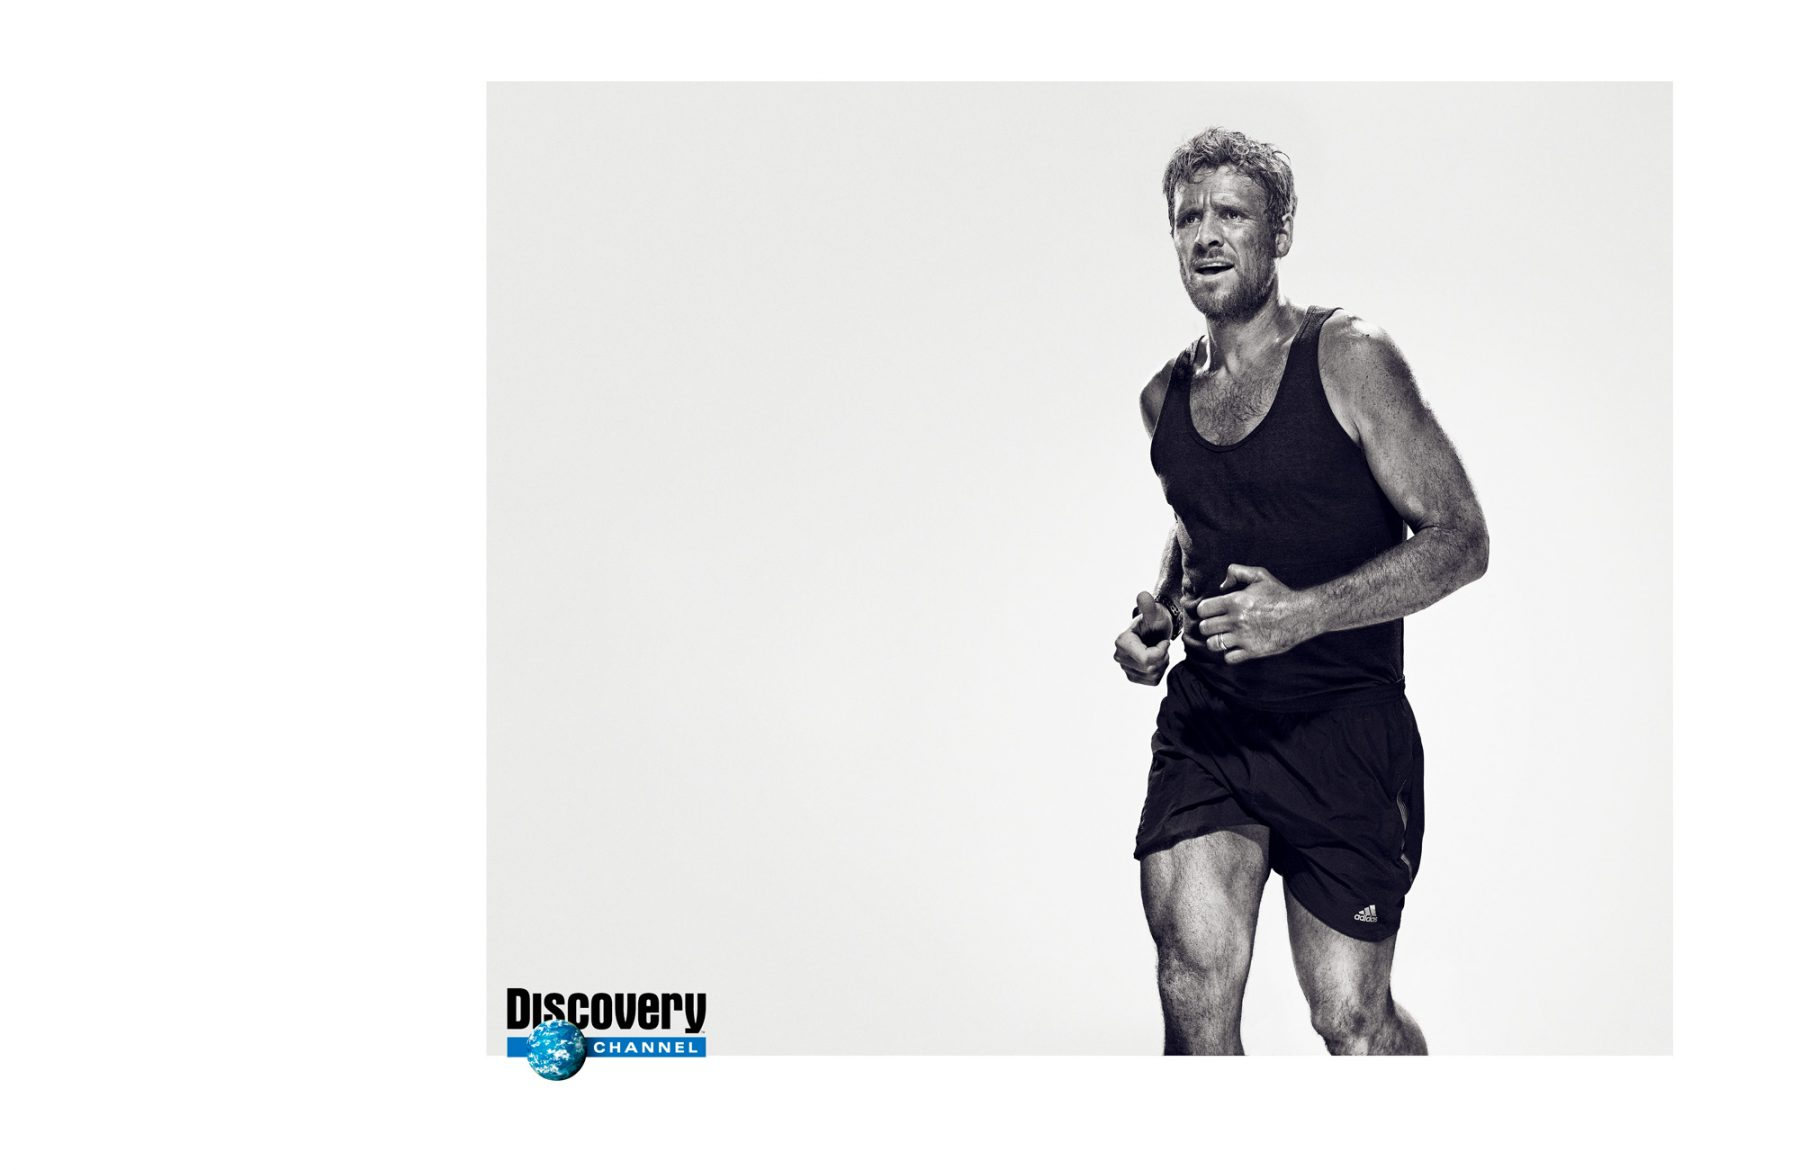 Discovery channel – James Cracknell - 1 of 2